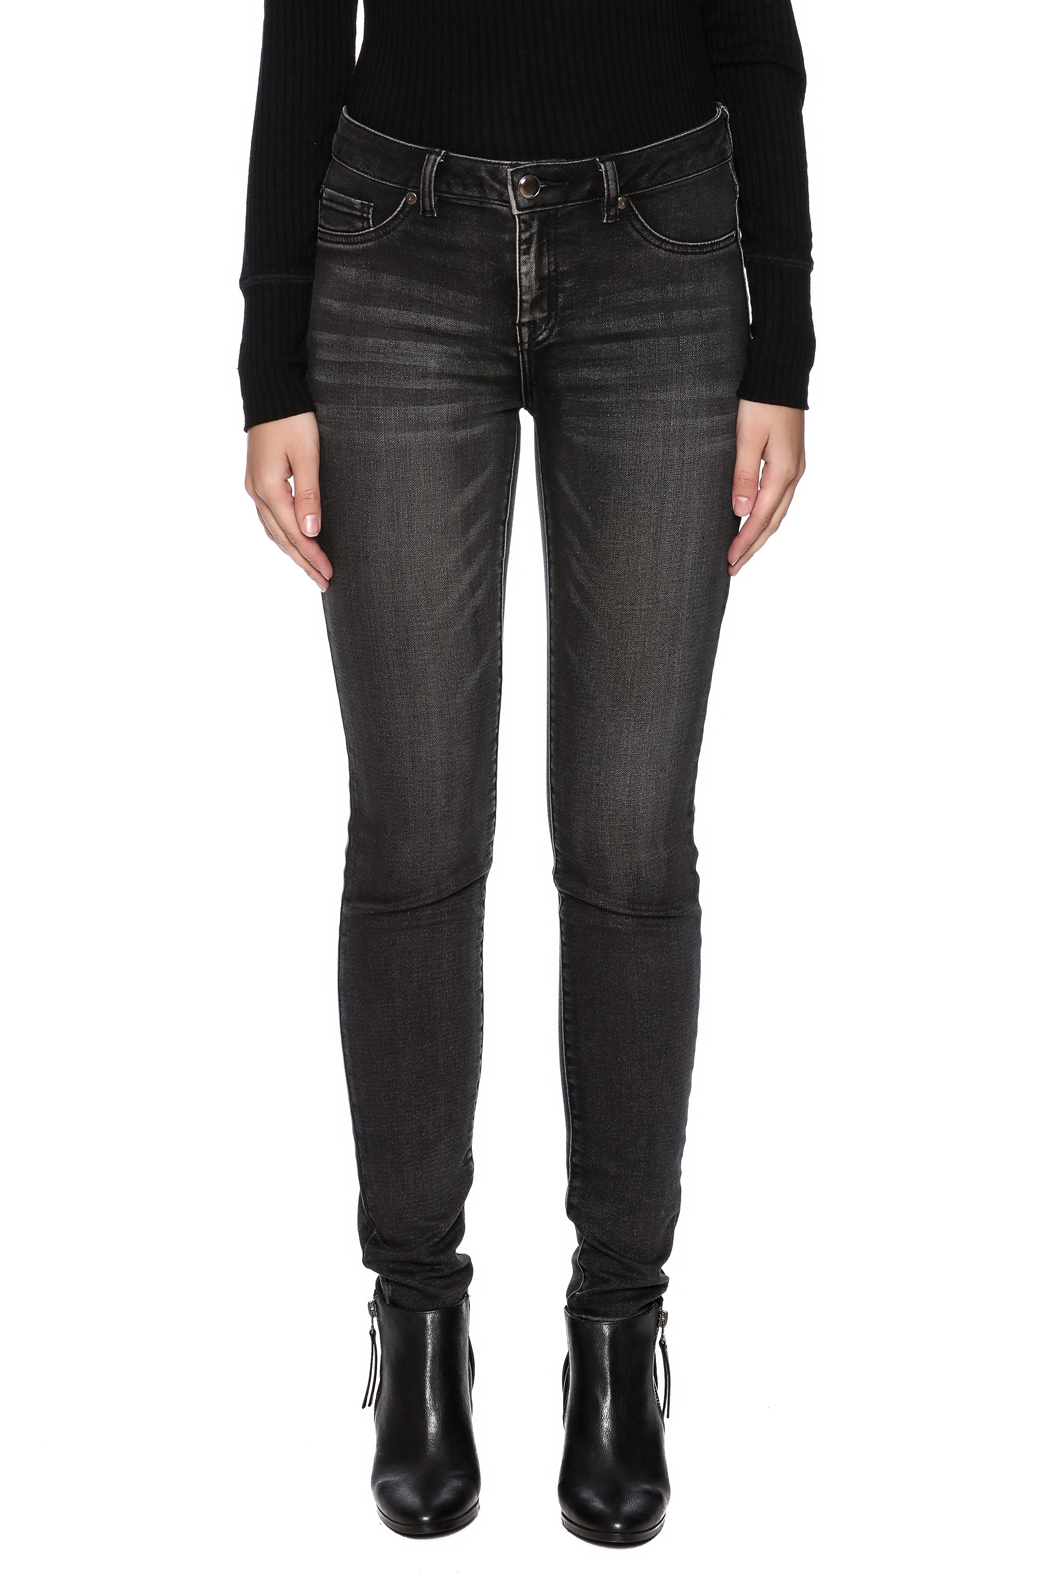 Tribal Jeans Black Distressed Jean - Side Cropped Image